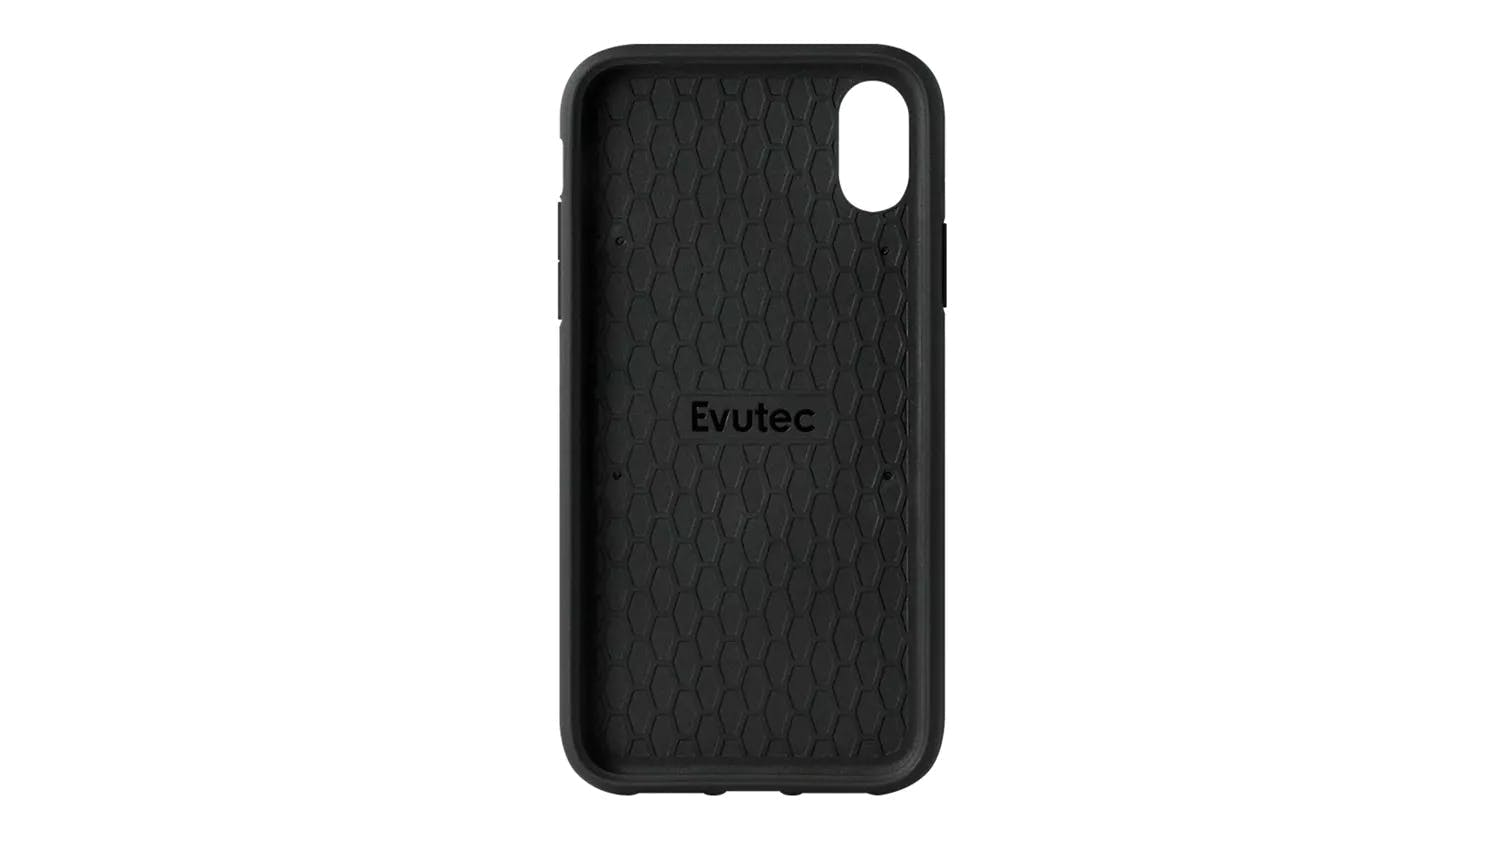 Evutec Northill Case in Black/ Canvas